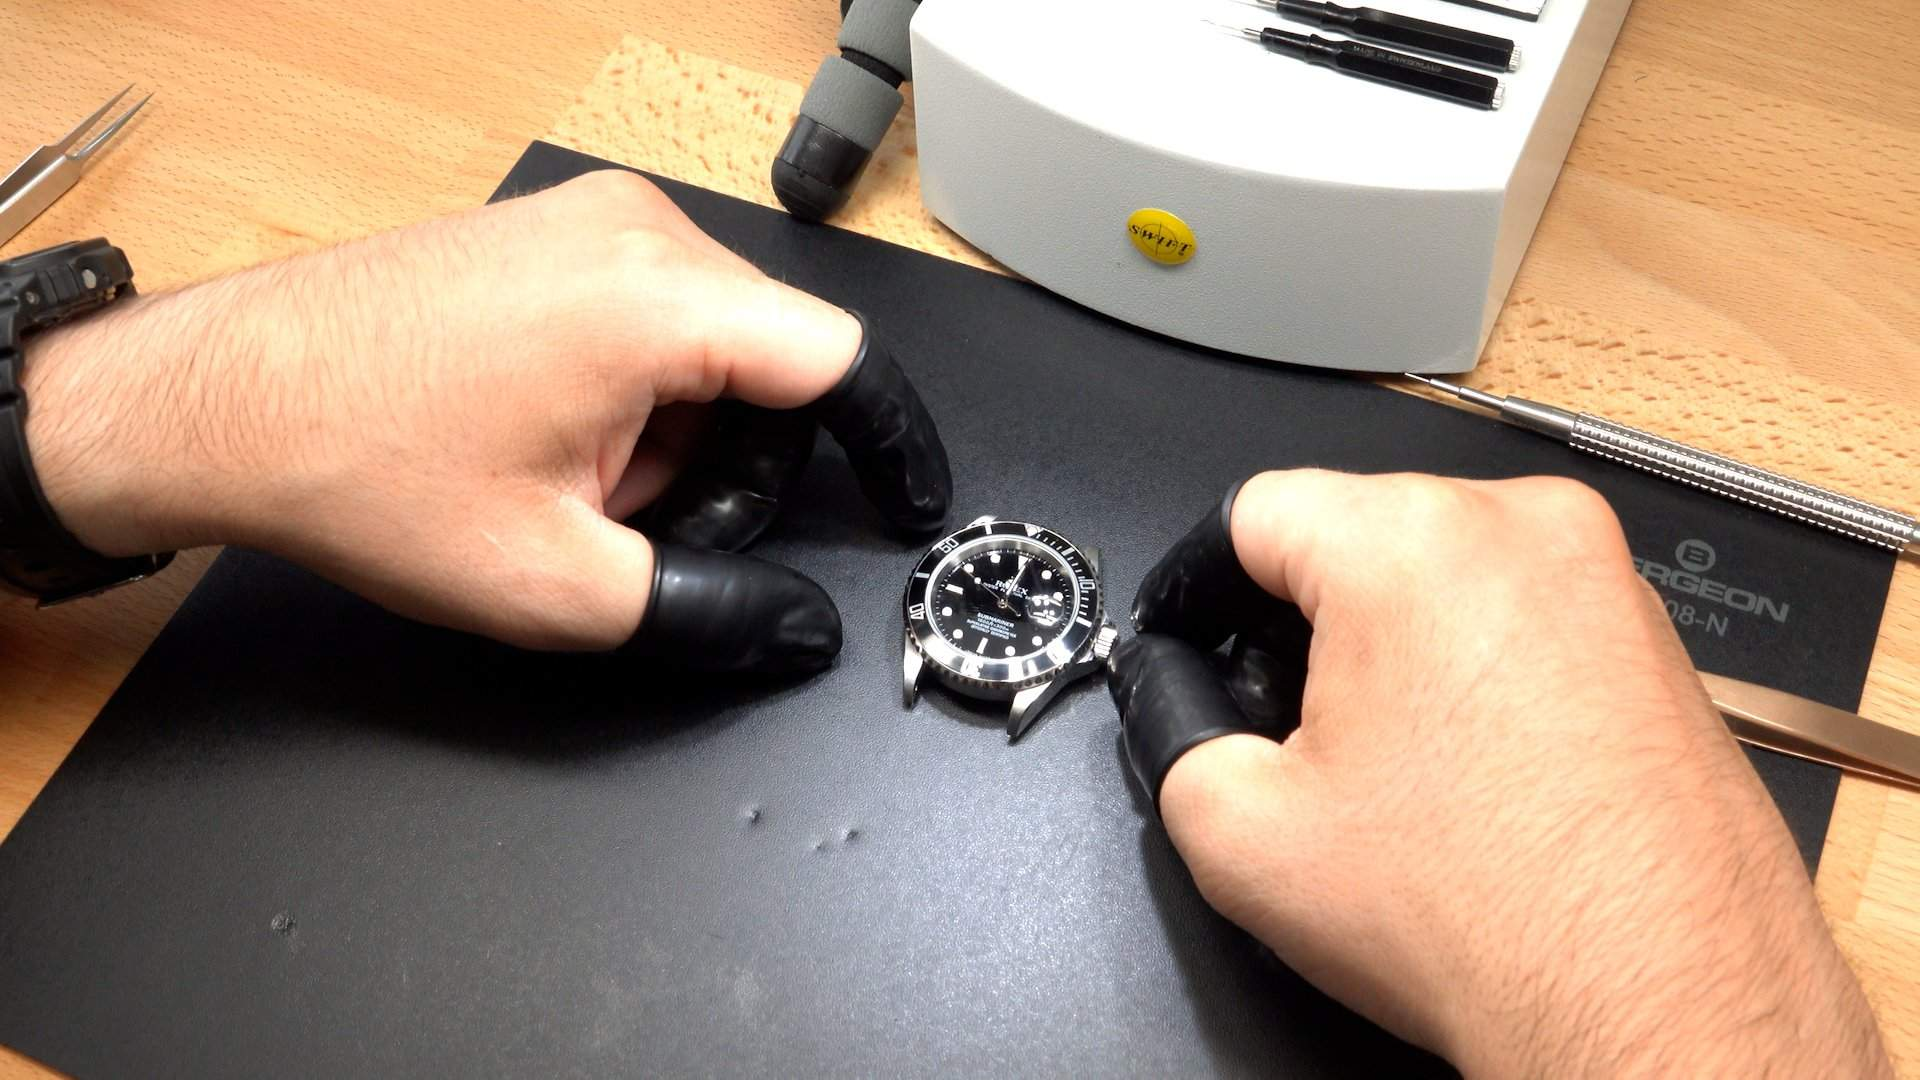 The Rolex Submariner requires regular maintenance like any other watch.